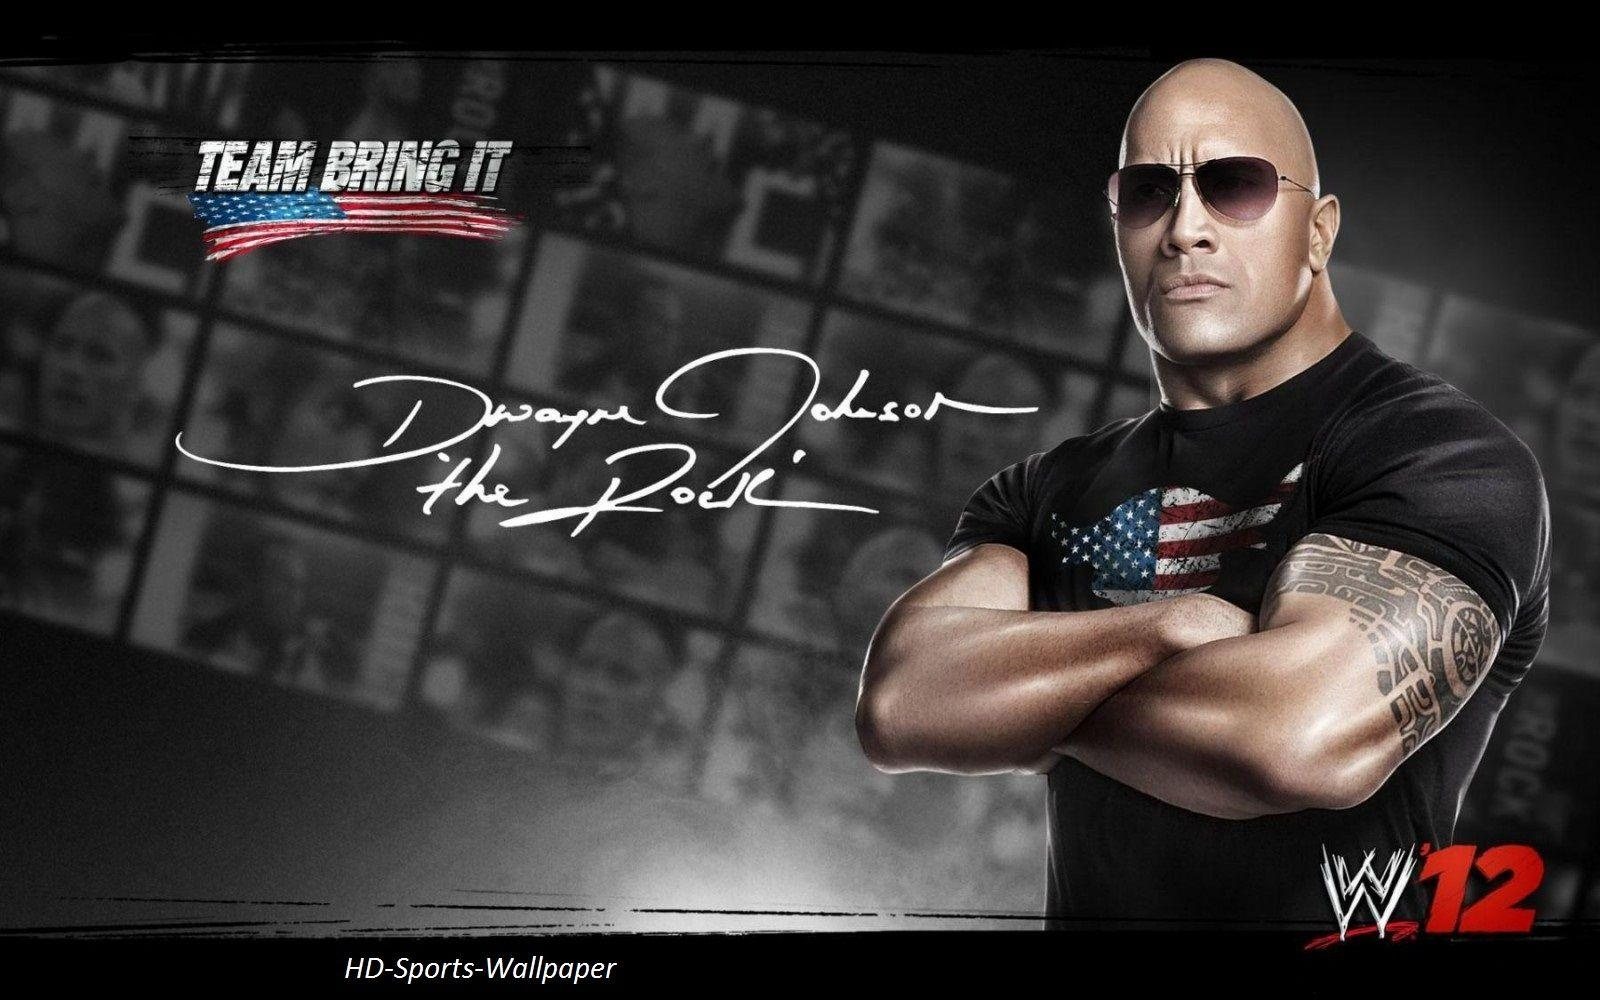 HD Sports Wallpaper: The Rock